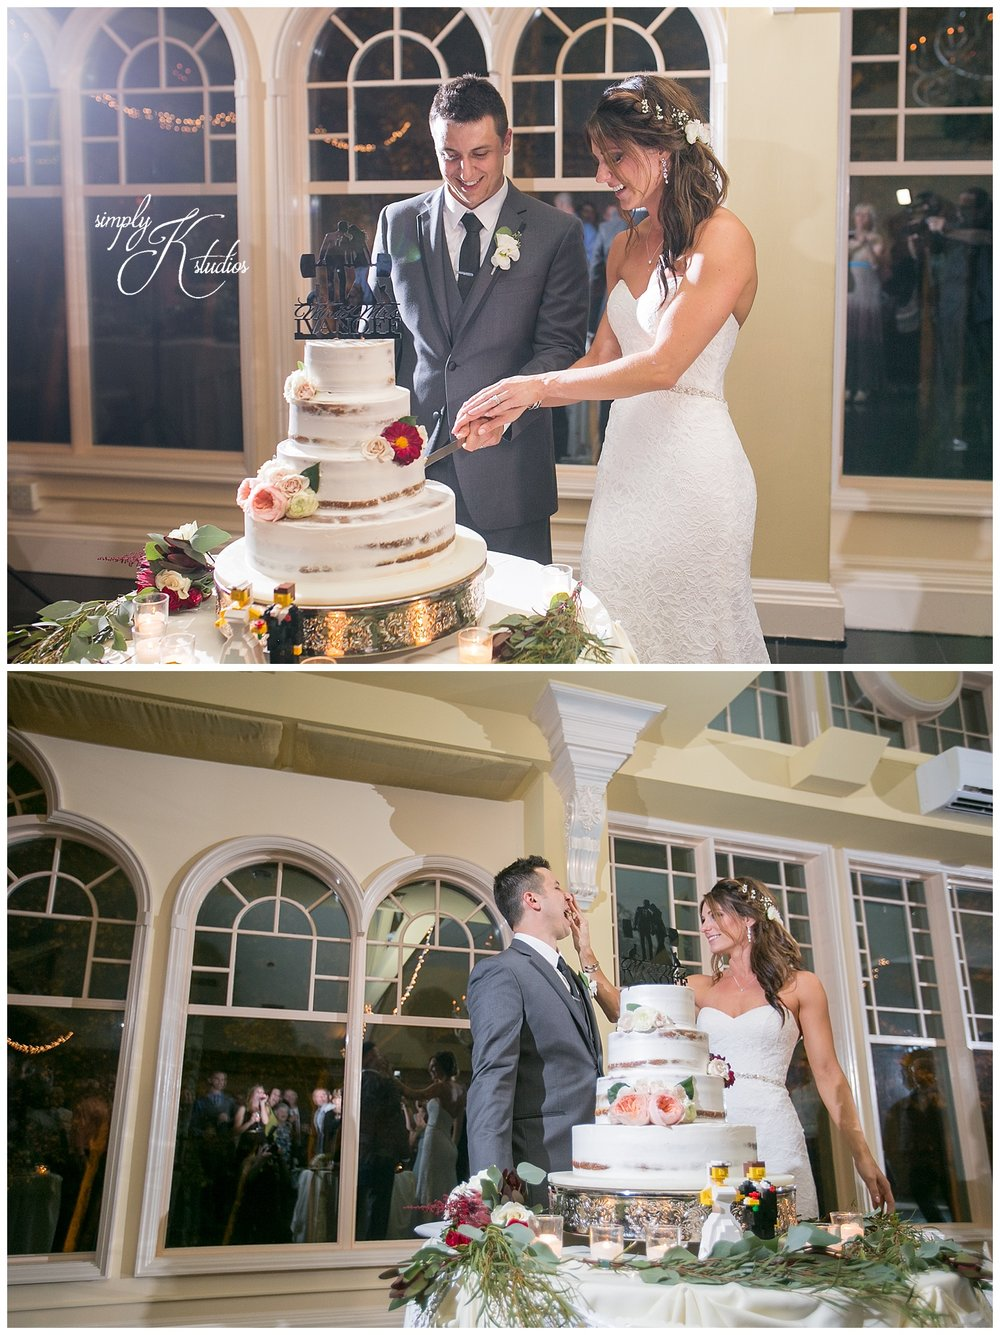 Cake Cutting at The Waterview.jpg